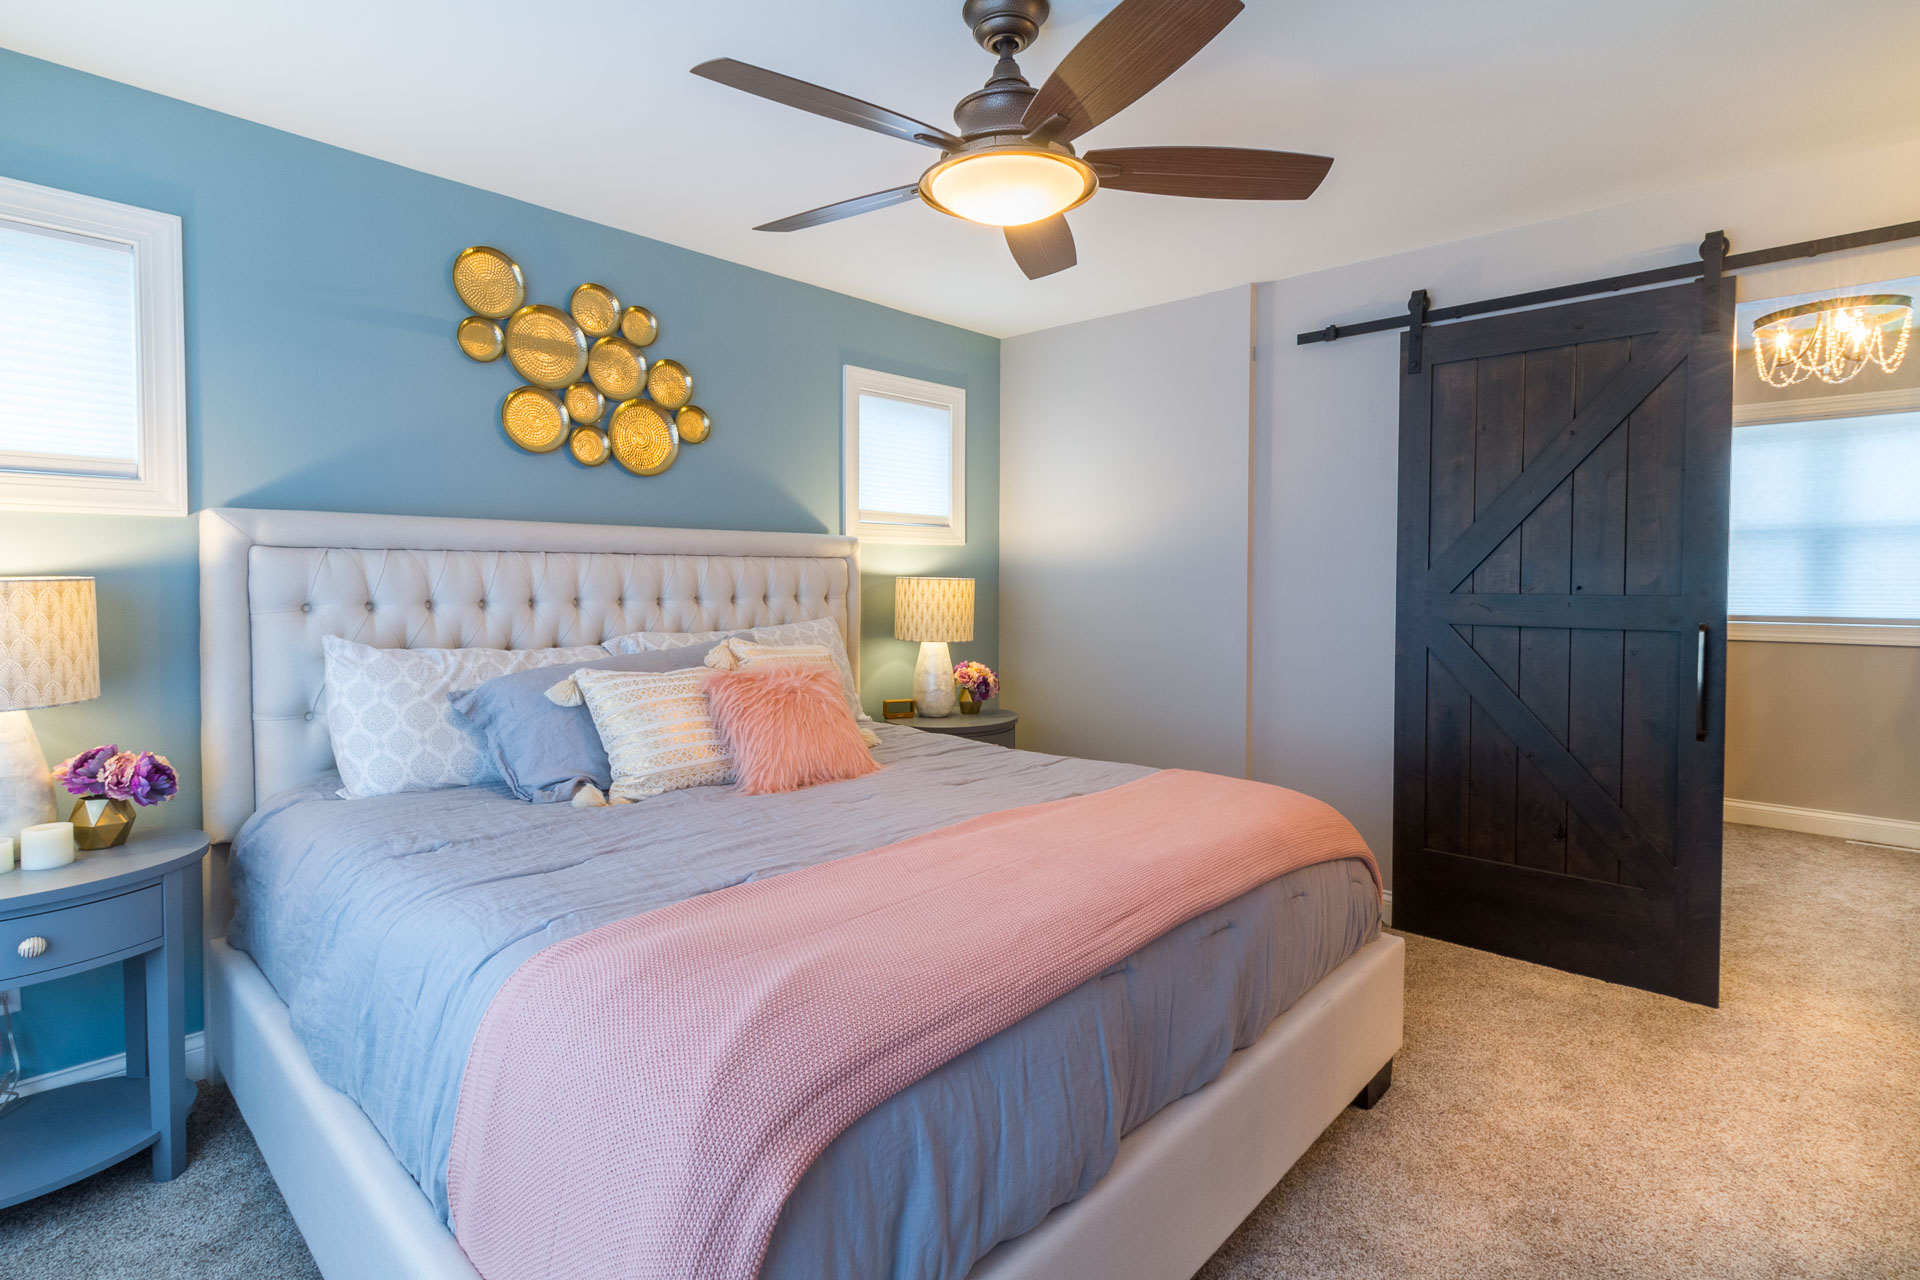 Attic Remodeling For A Bedroom